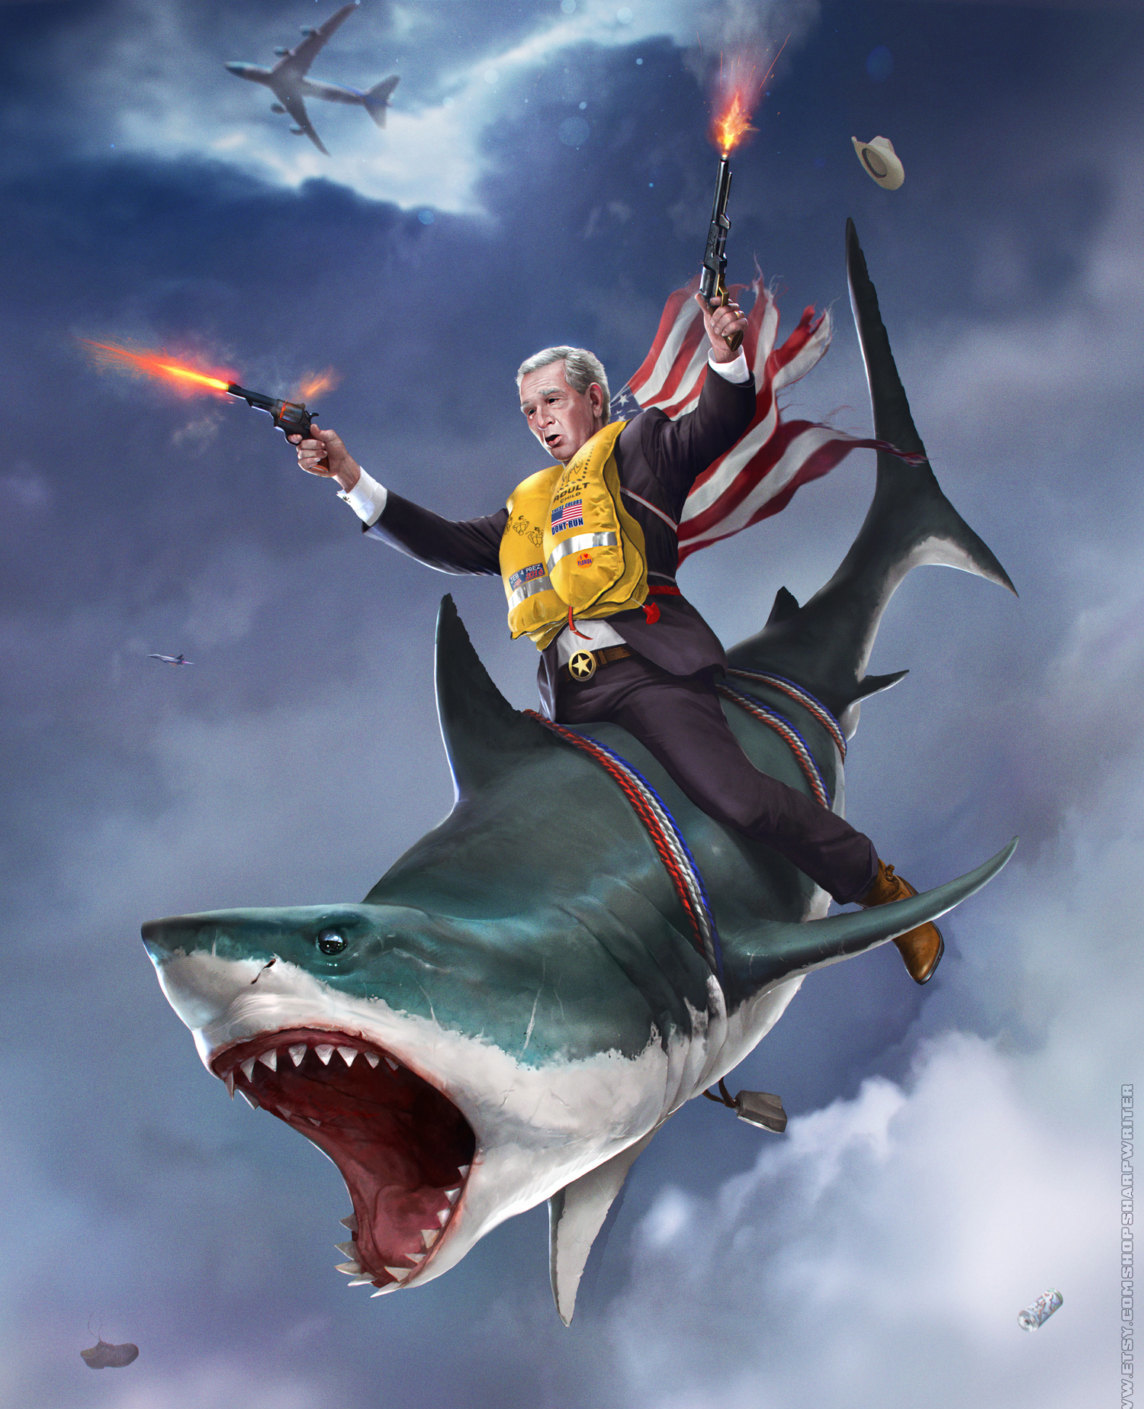 Badass Wallpapers: These Badass Presidential Portraits Are The Most American